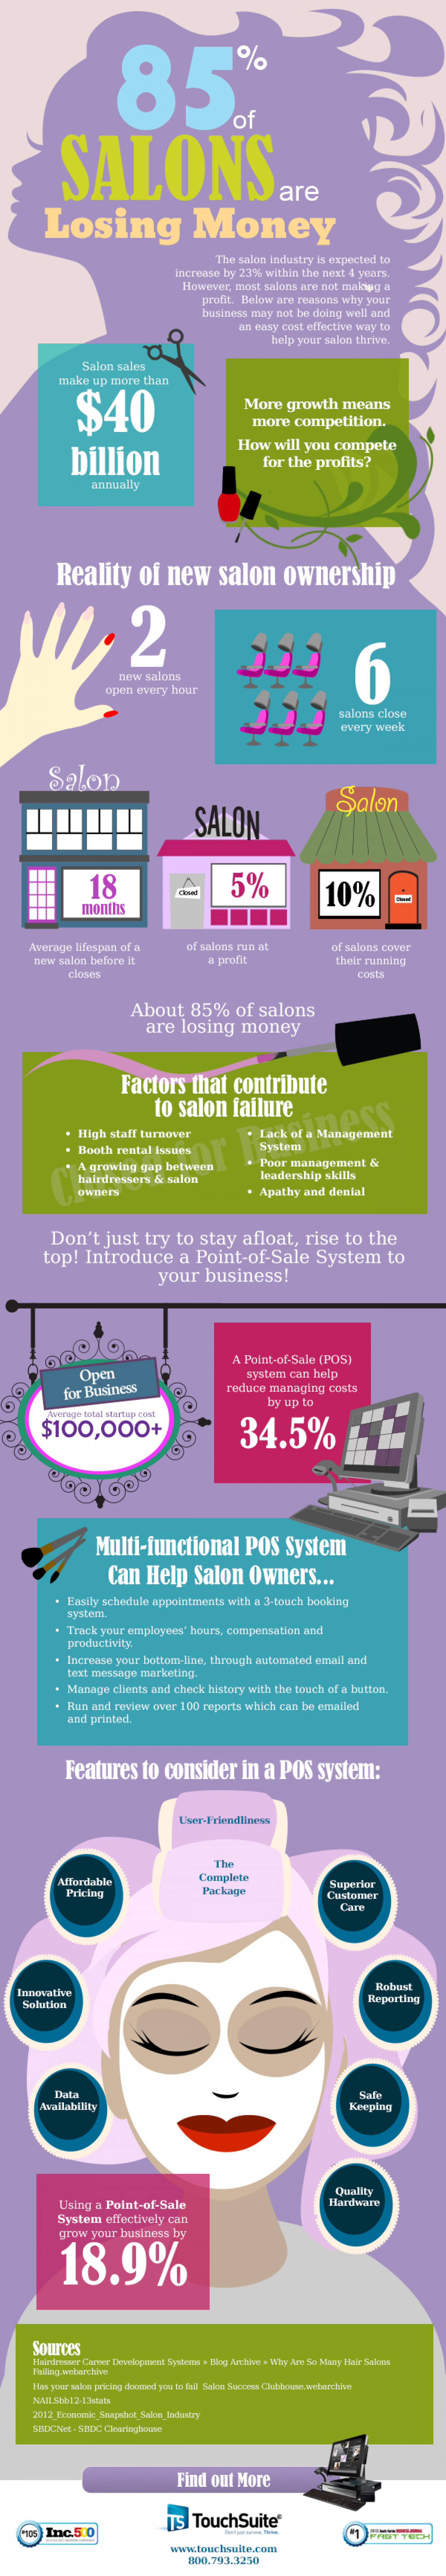 85% of Salons are Losing Money Infographic